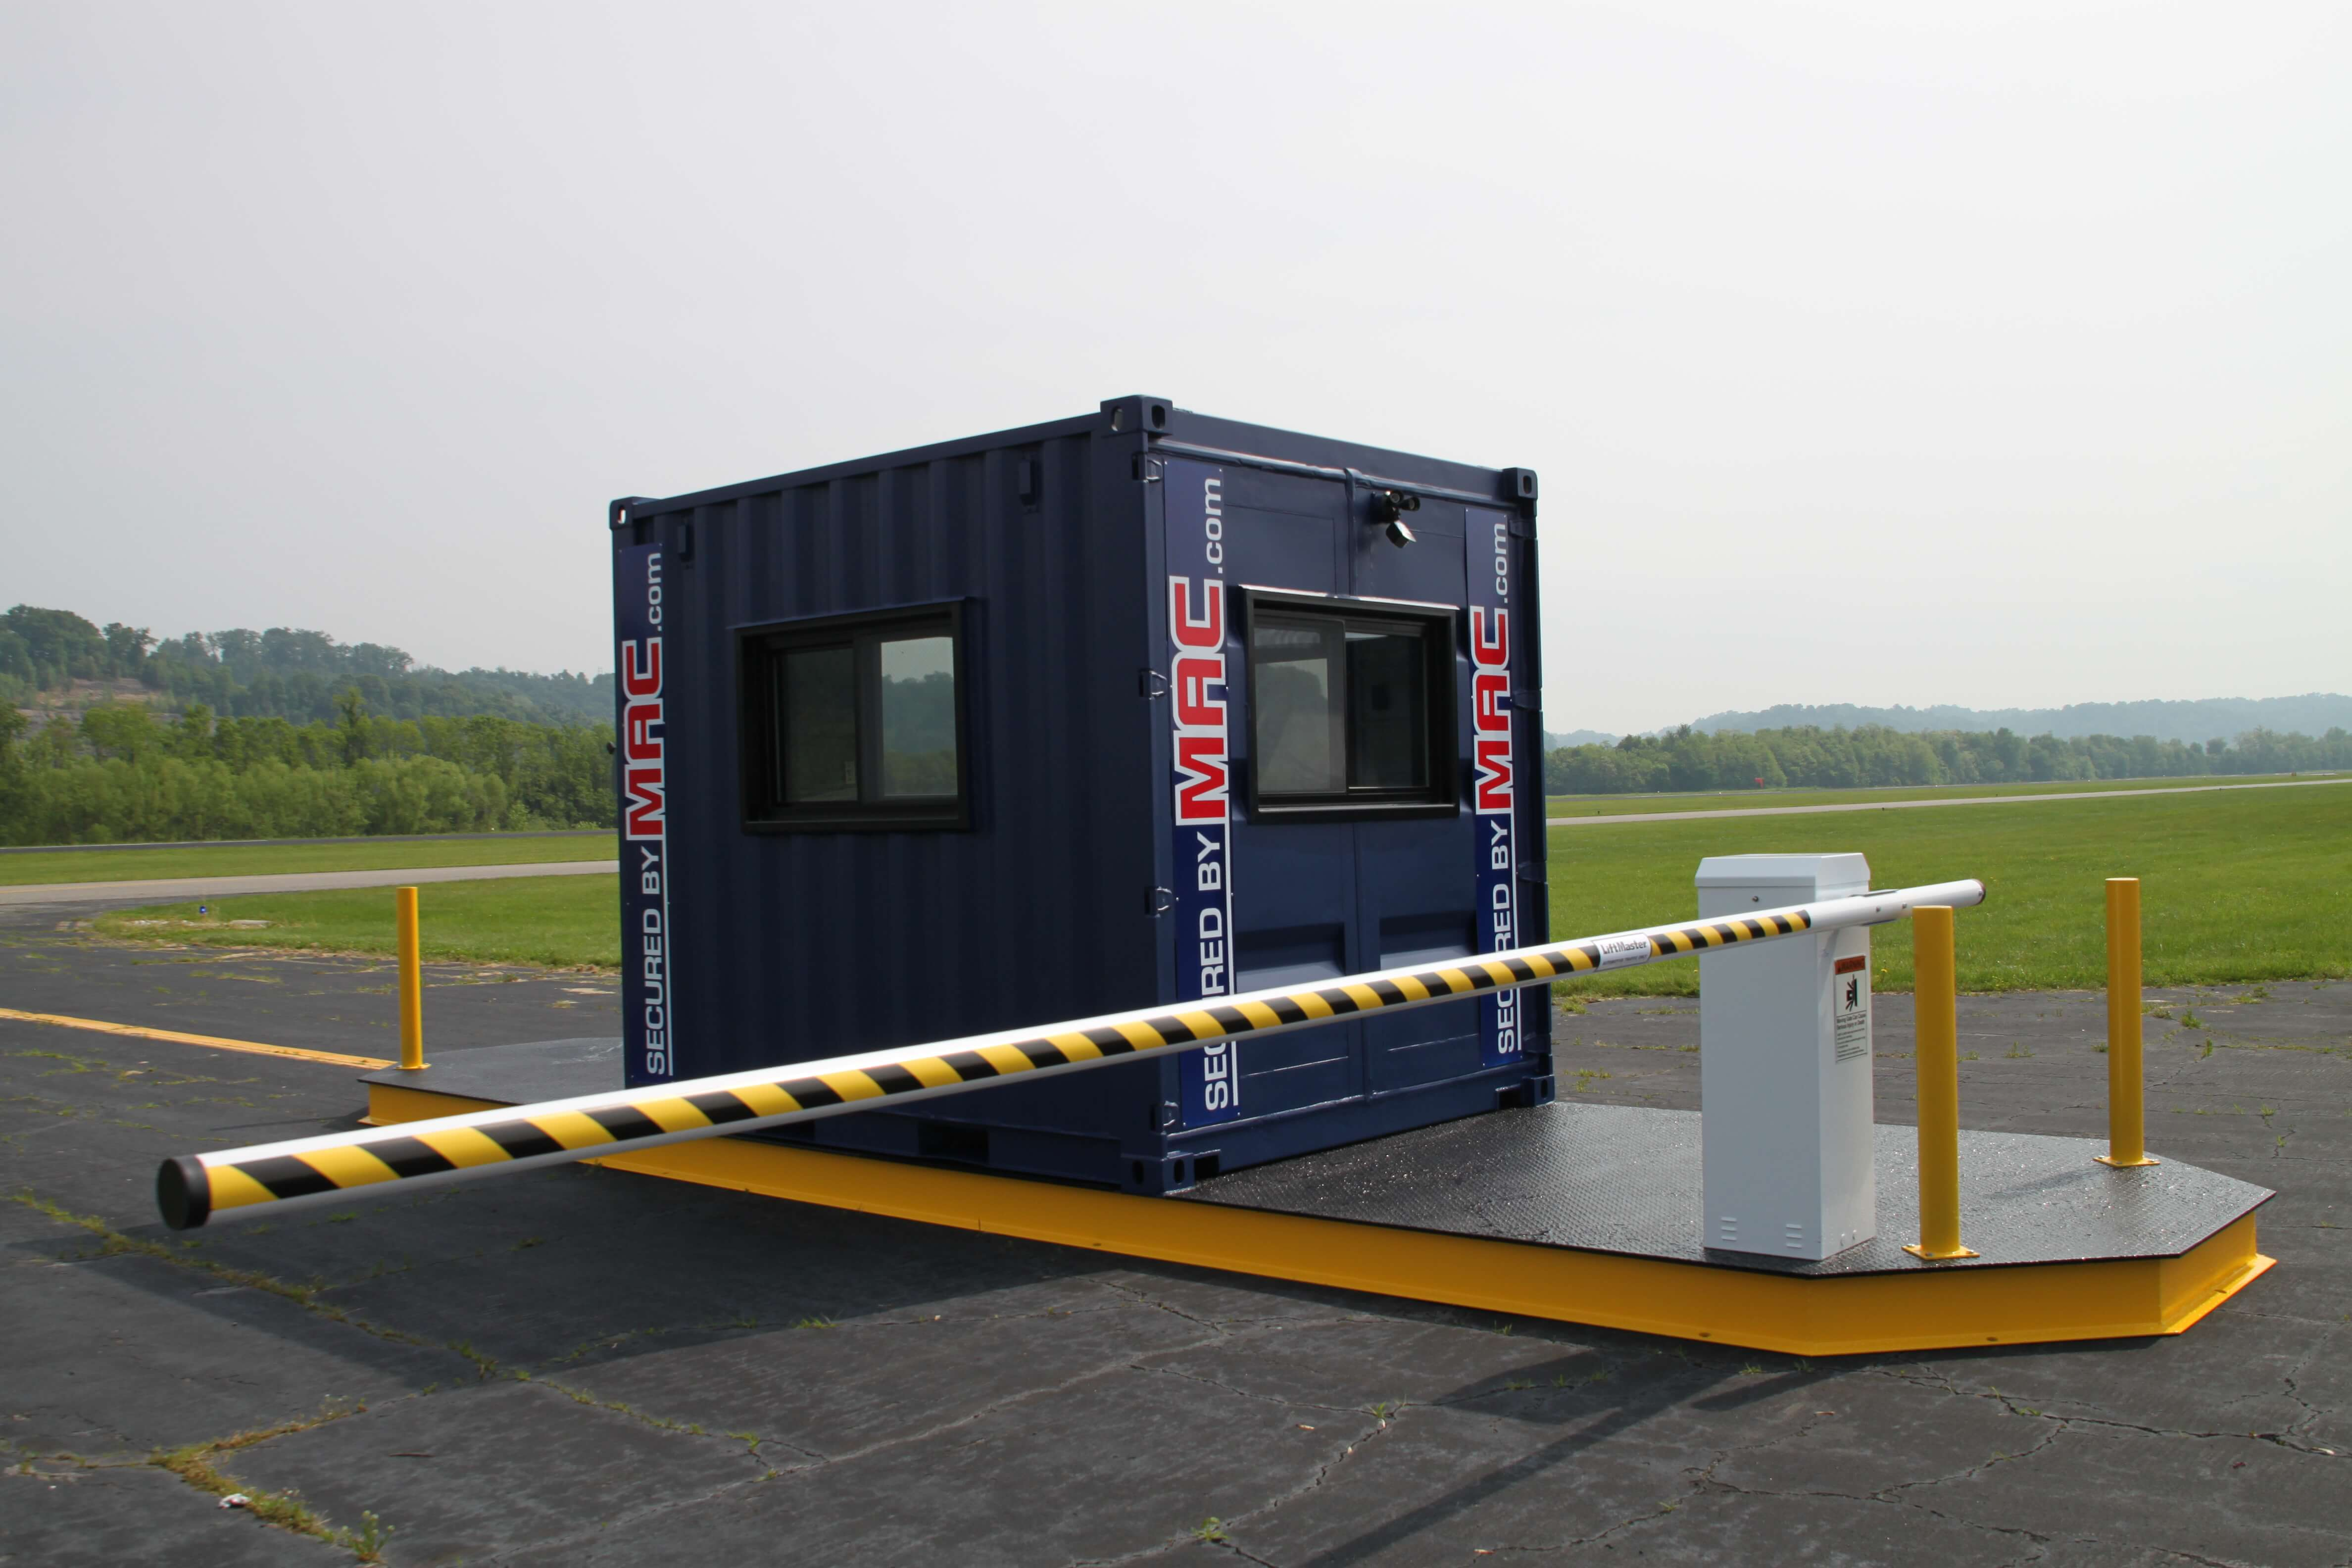 Vehicle Access Control gate with an office